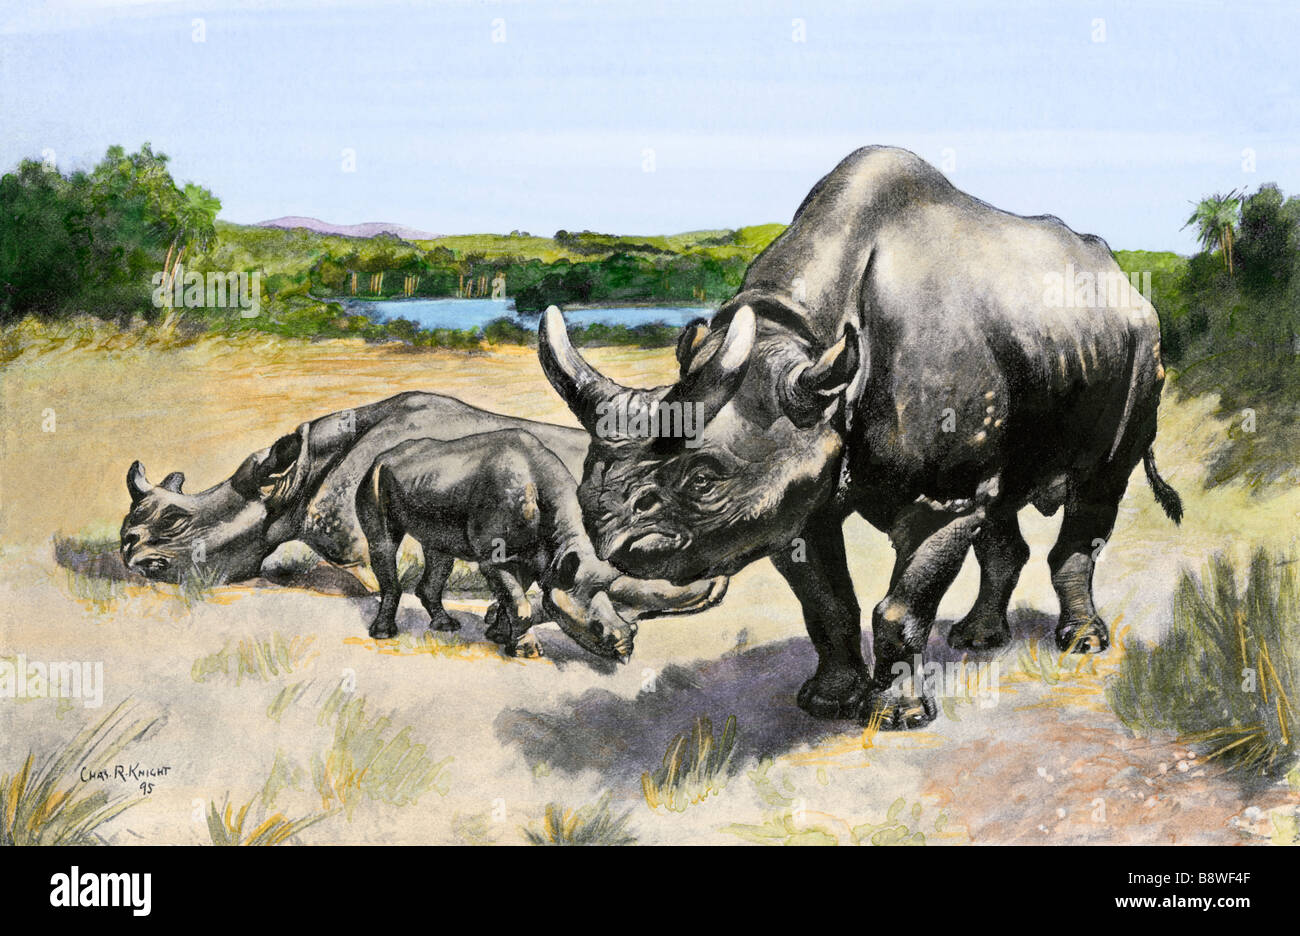 Extinct species of rhinocerus Titanothere, ancient South Dakota. Hand-colored halftone of a Charles Knight illustration - Stock Image